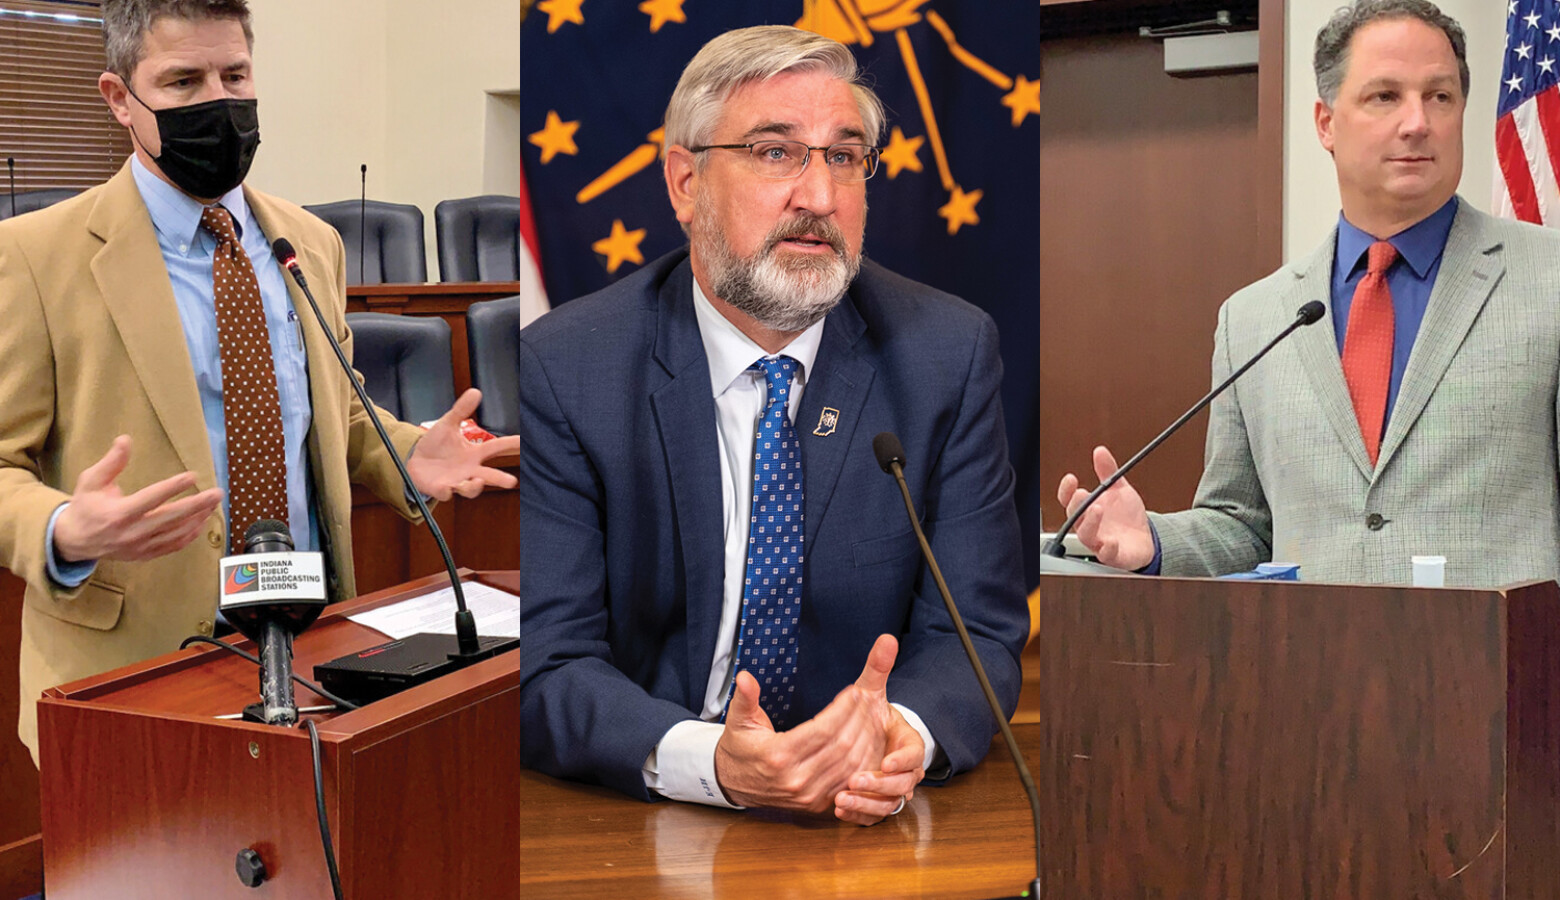 House Speaker Todd Huston (R-Fishers), right, said he and Senate President Pro Tem Rodric Bray (R-Martinsville), left, don't agree with Gov. Eric Holcomb, center, over the constitutionality of a bill allowing lawmakers to call a special session. (Brandon